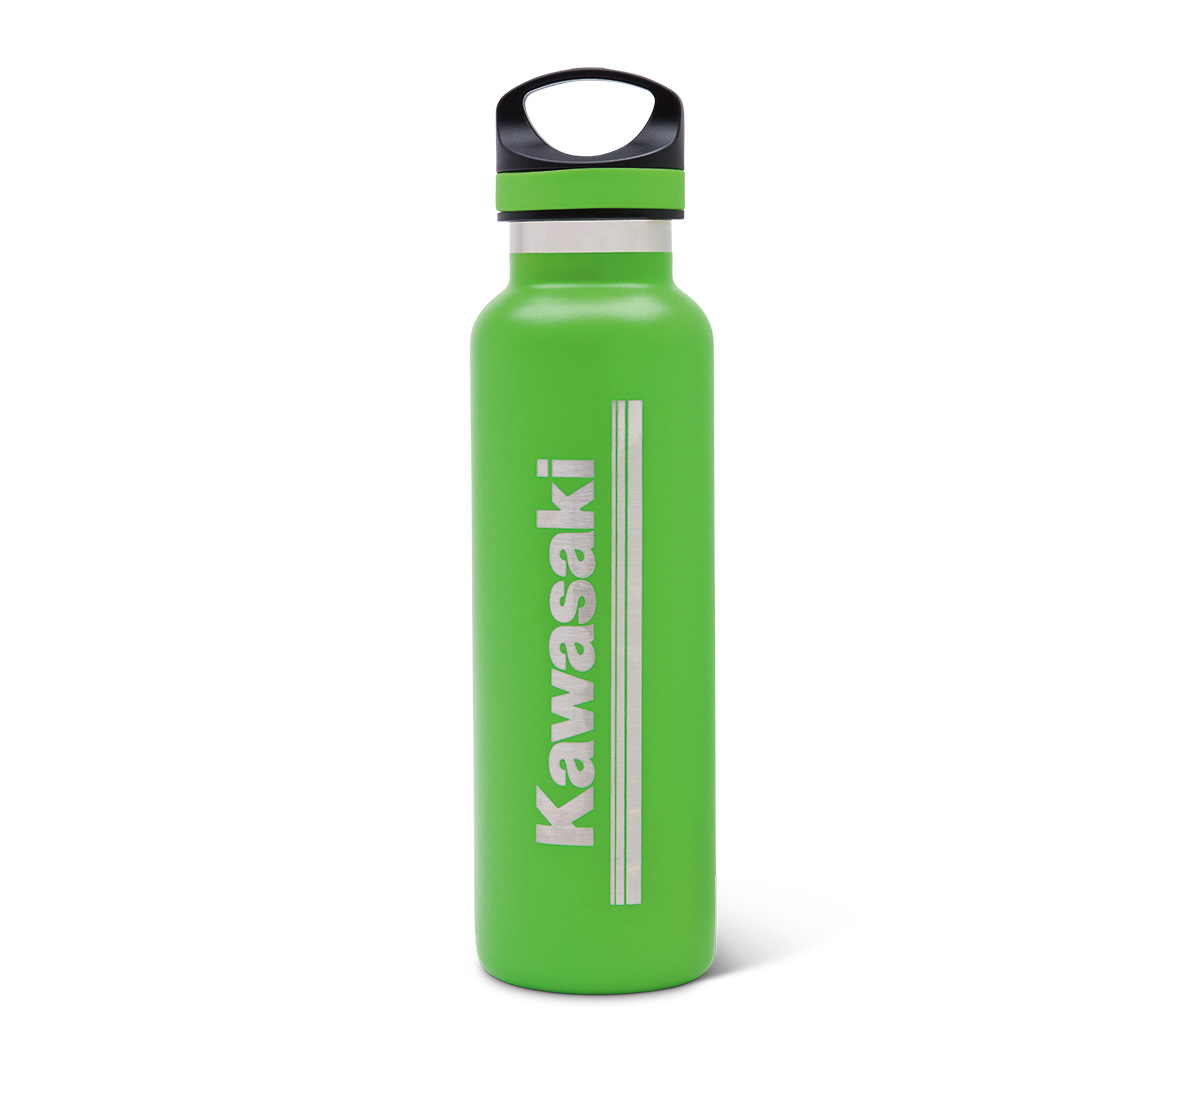 Kawasaki 3 Green Lines Stainless Steel Bottle